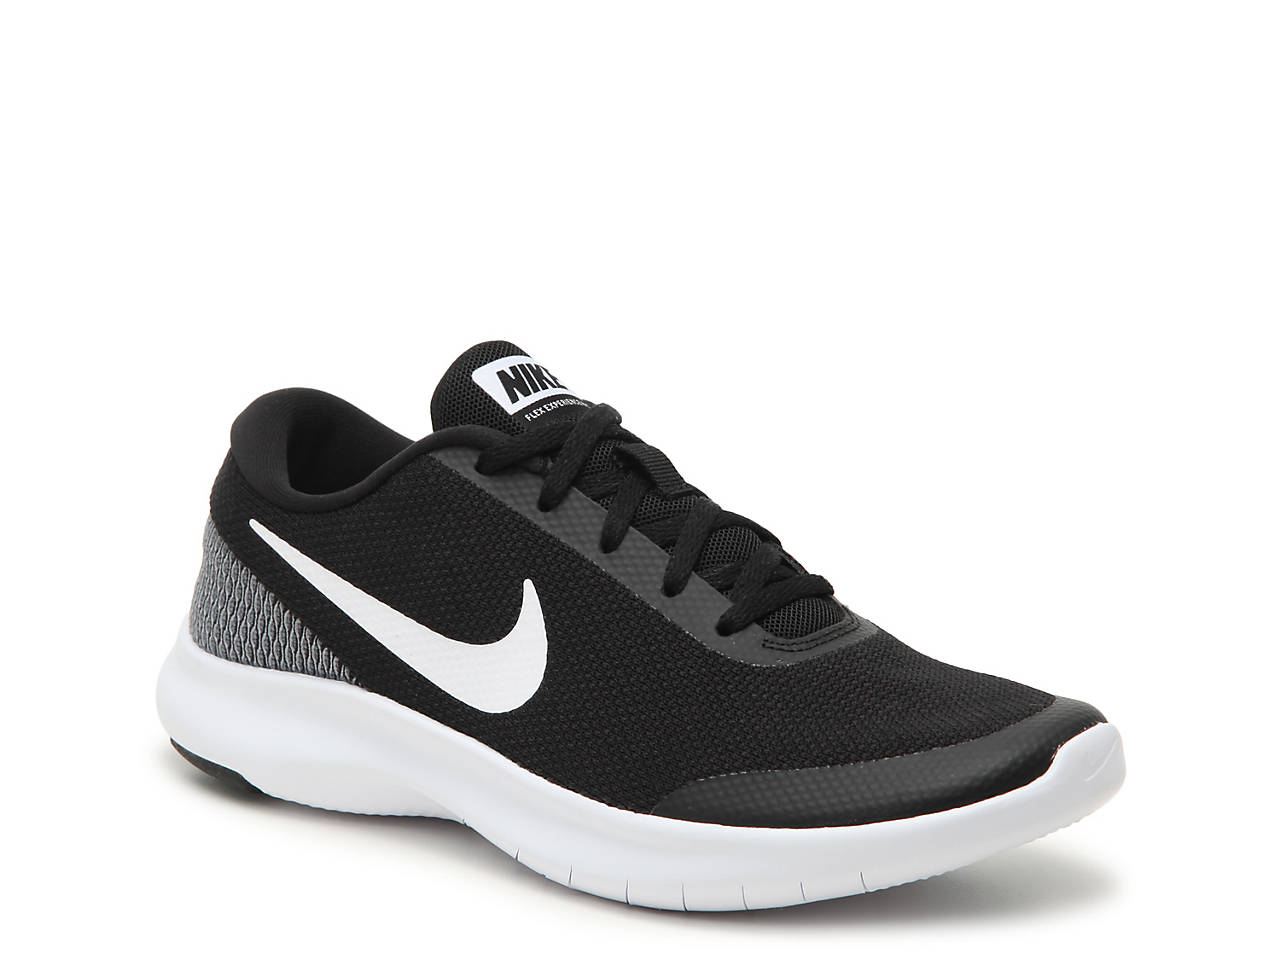 Nike Flex Experience RN 7 Sneaker Official Enjoy For Sale Store Cheap Price 1JarkXbv